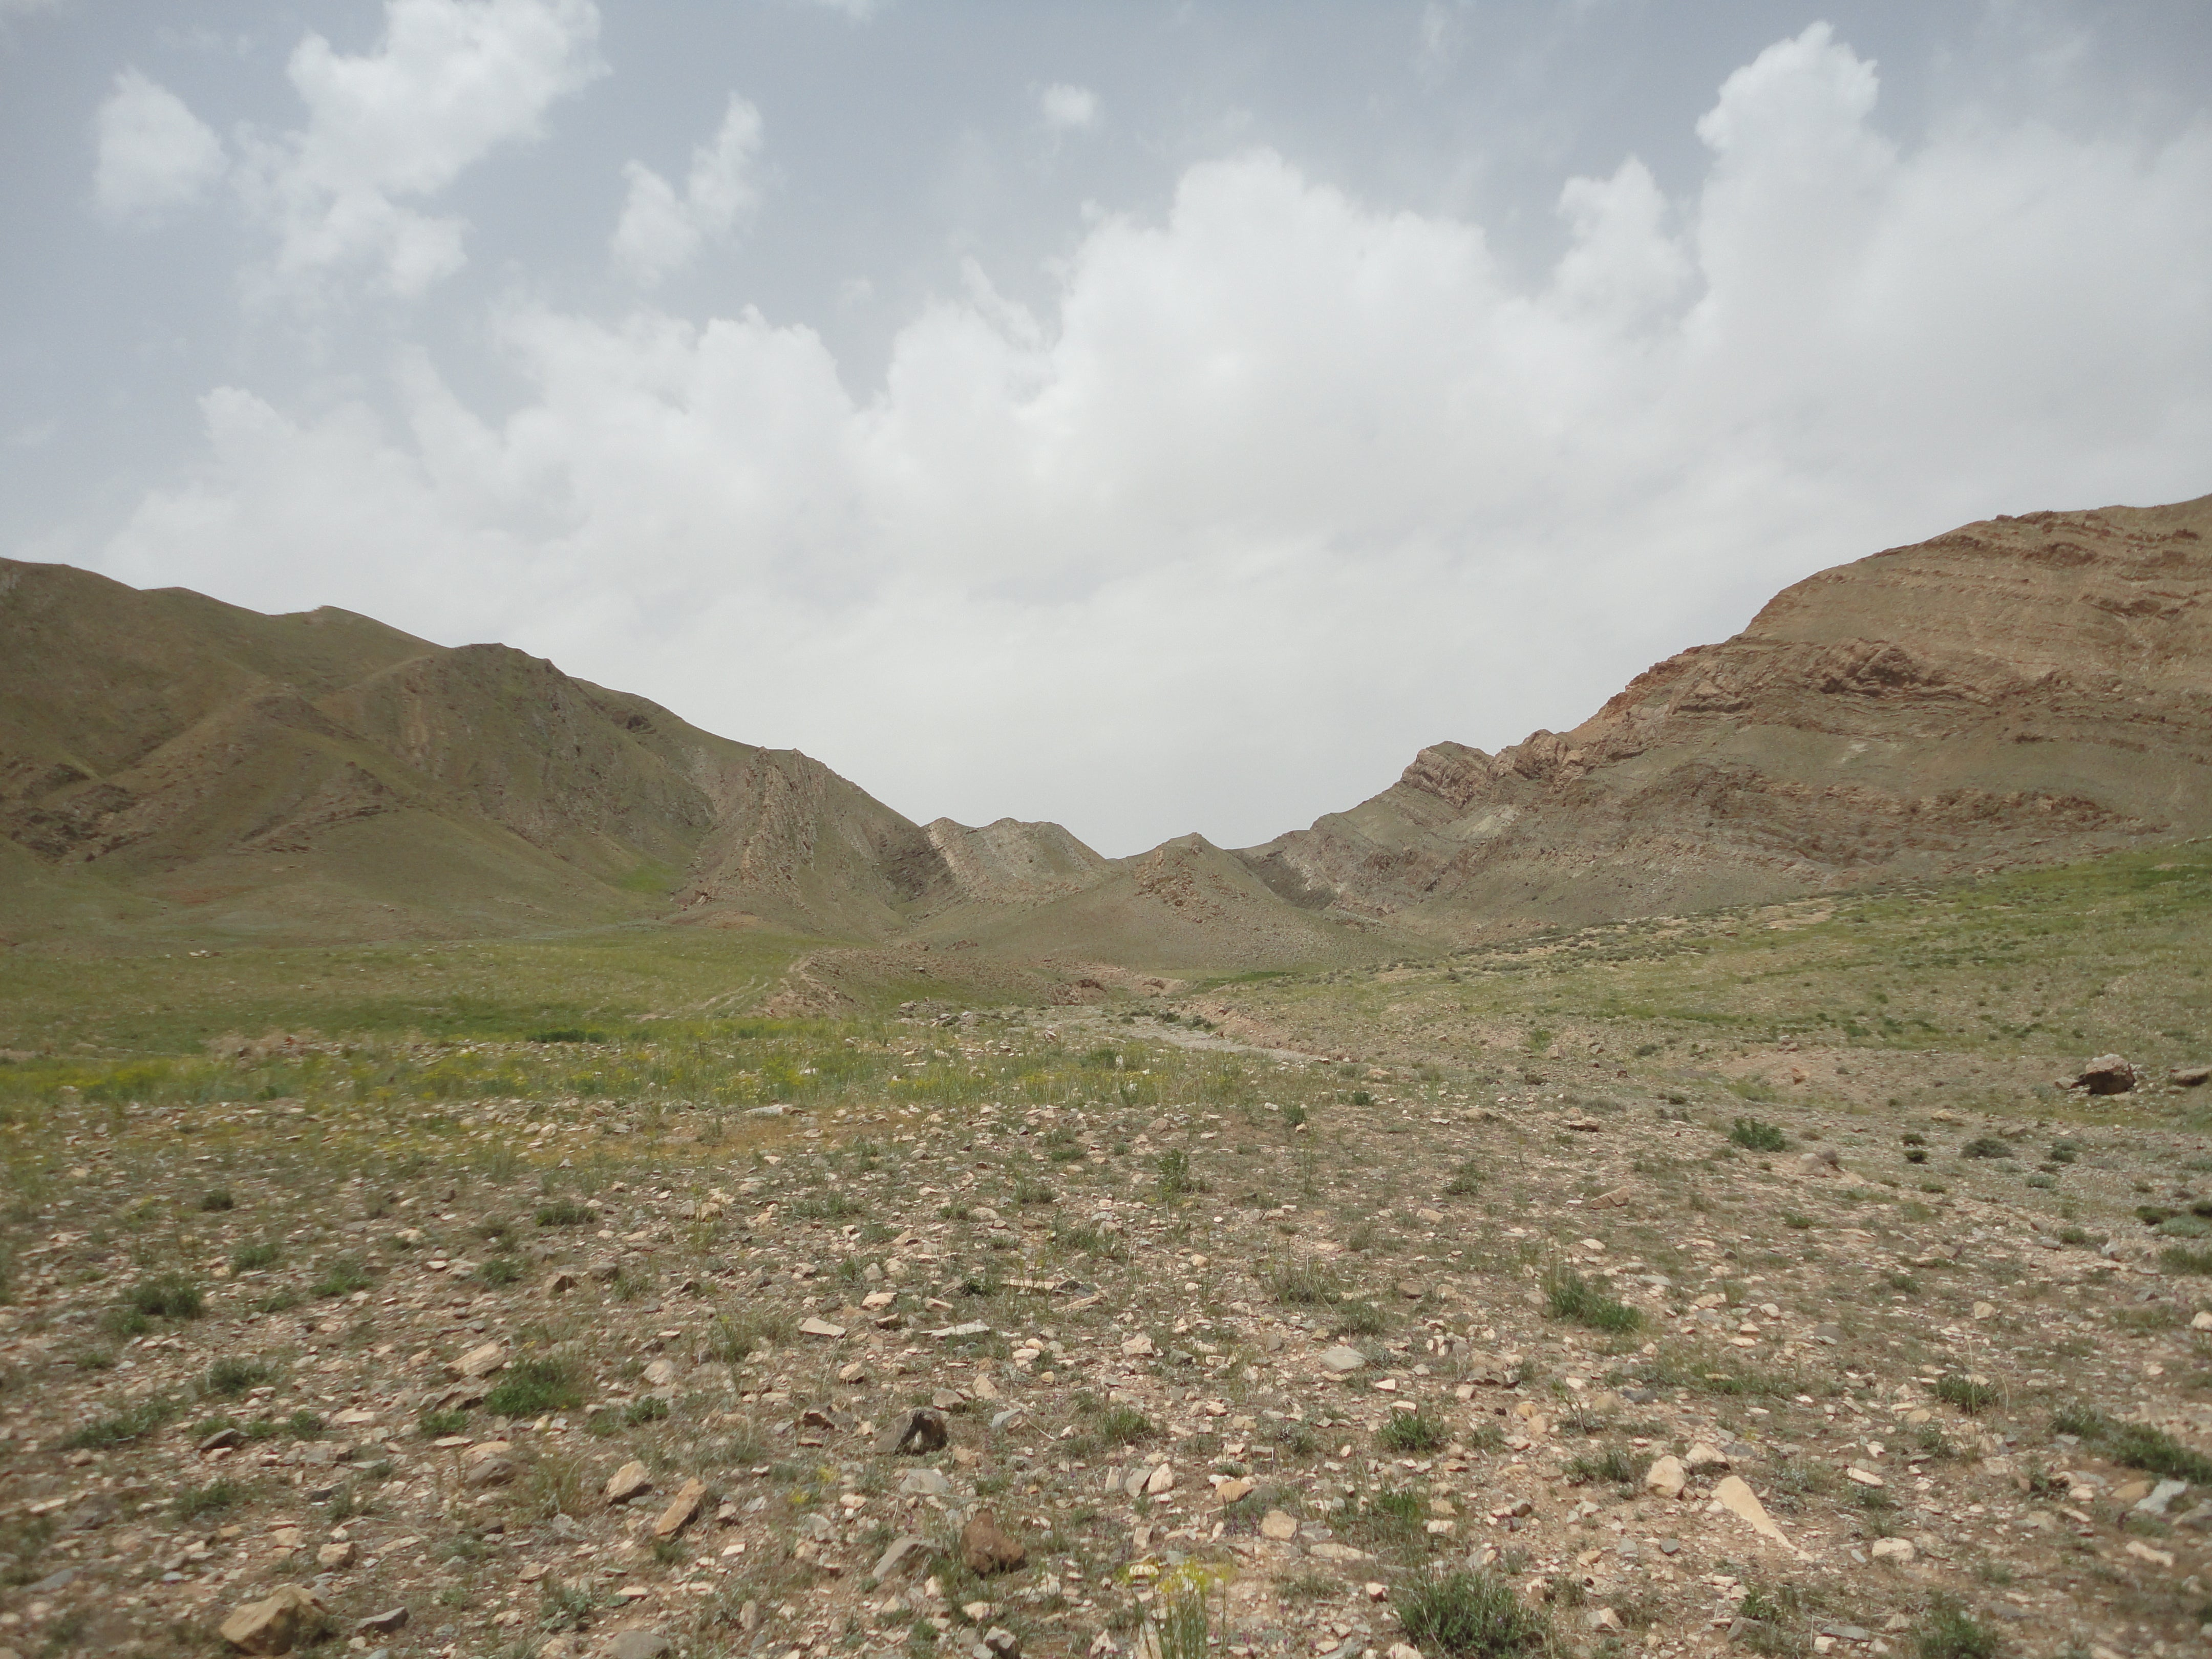 Field view from Iran where samples were collected for this study